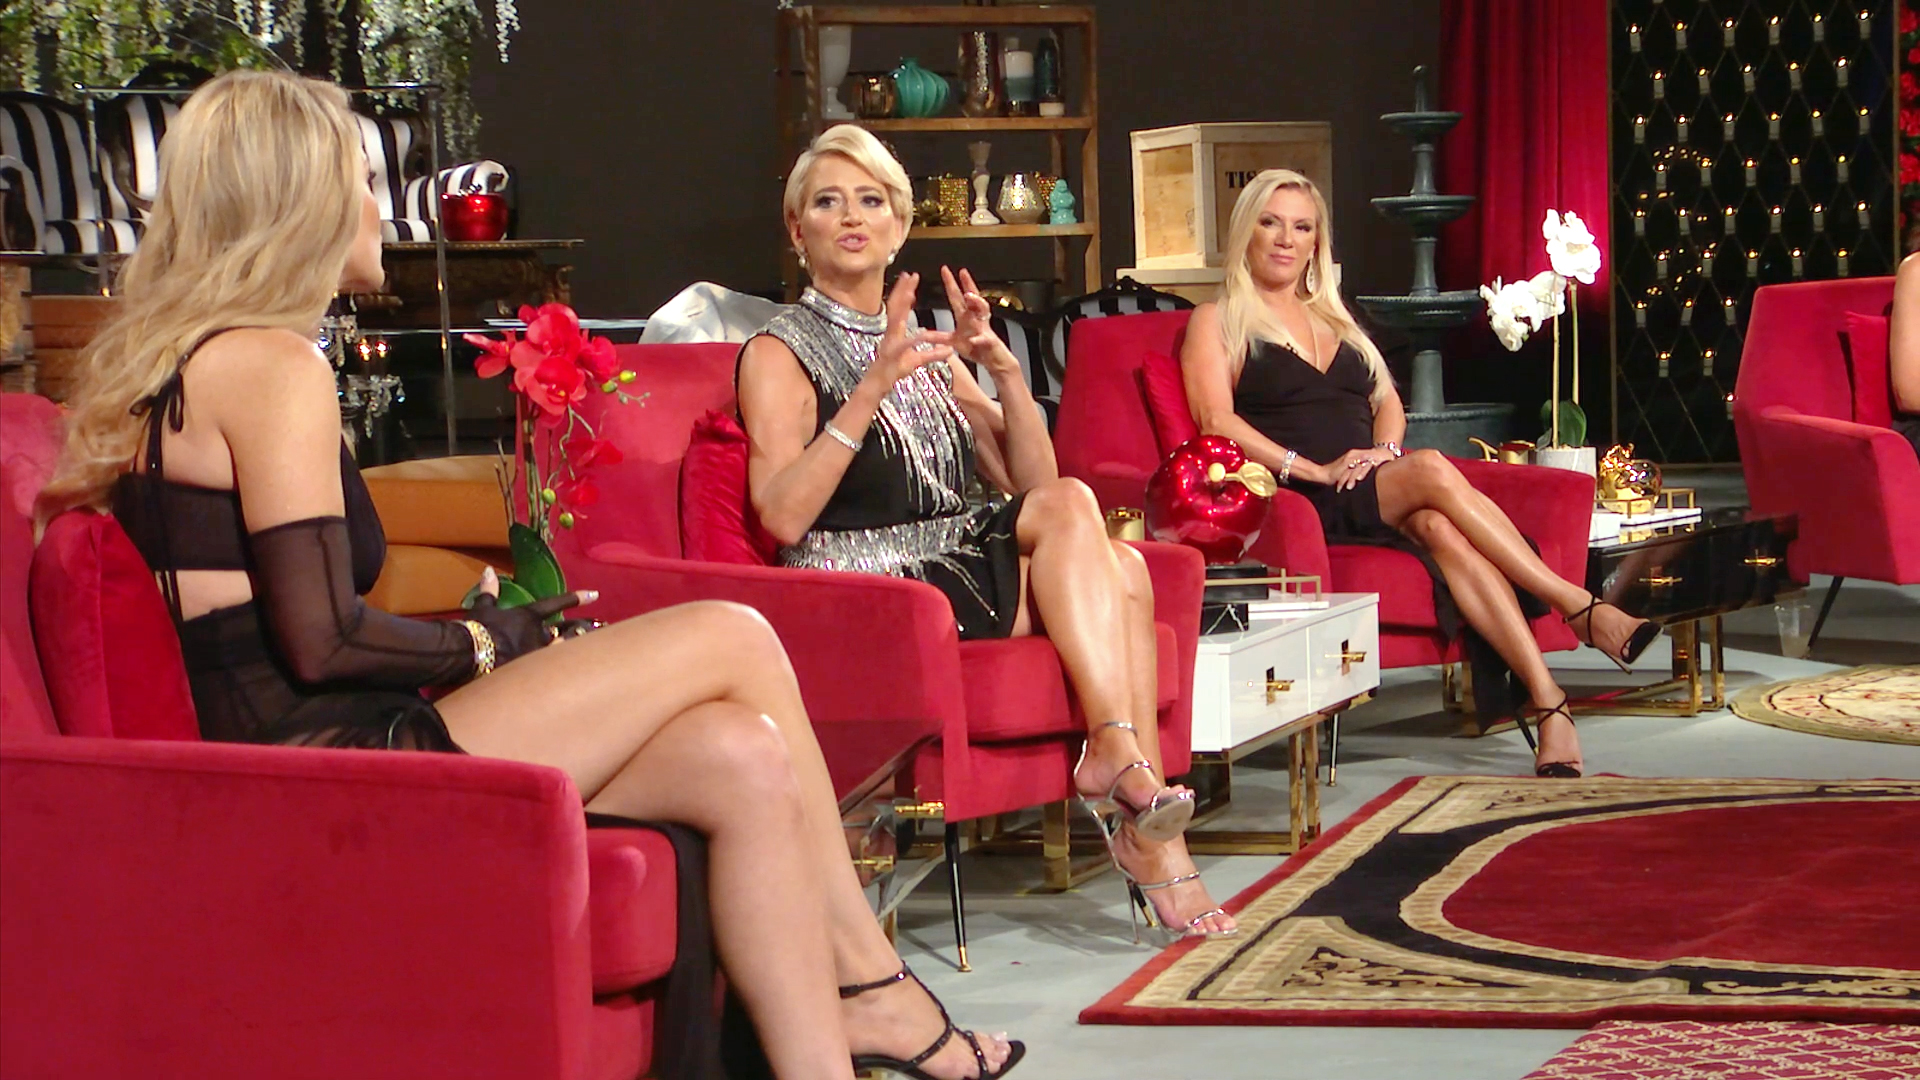 Why Did Dorinda Medley Get So Upset at the Finale Party?